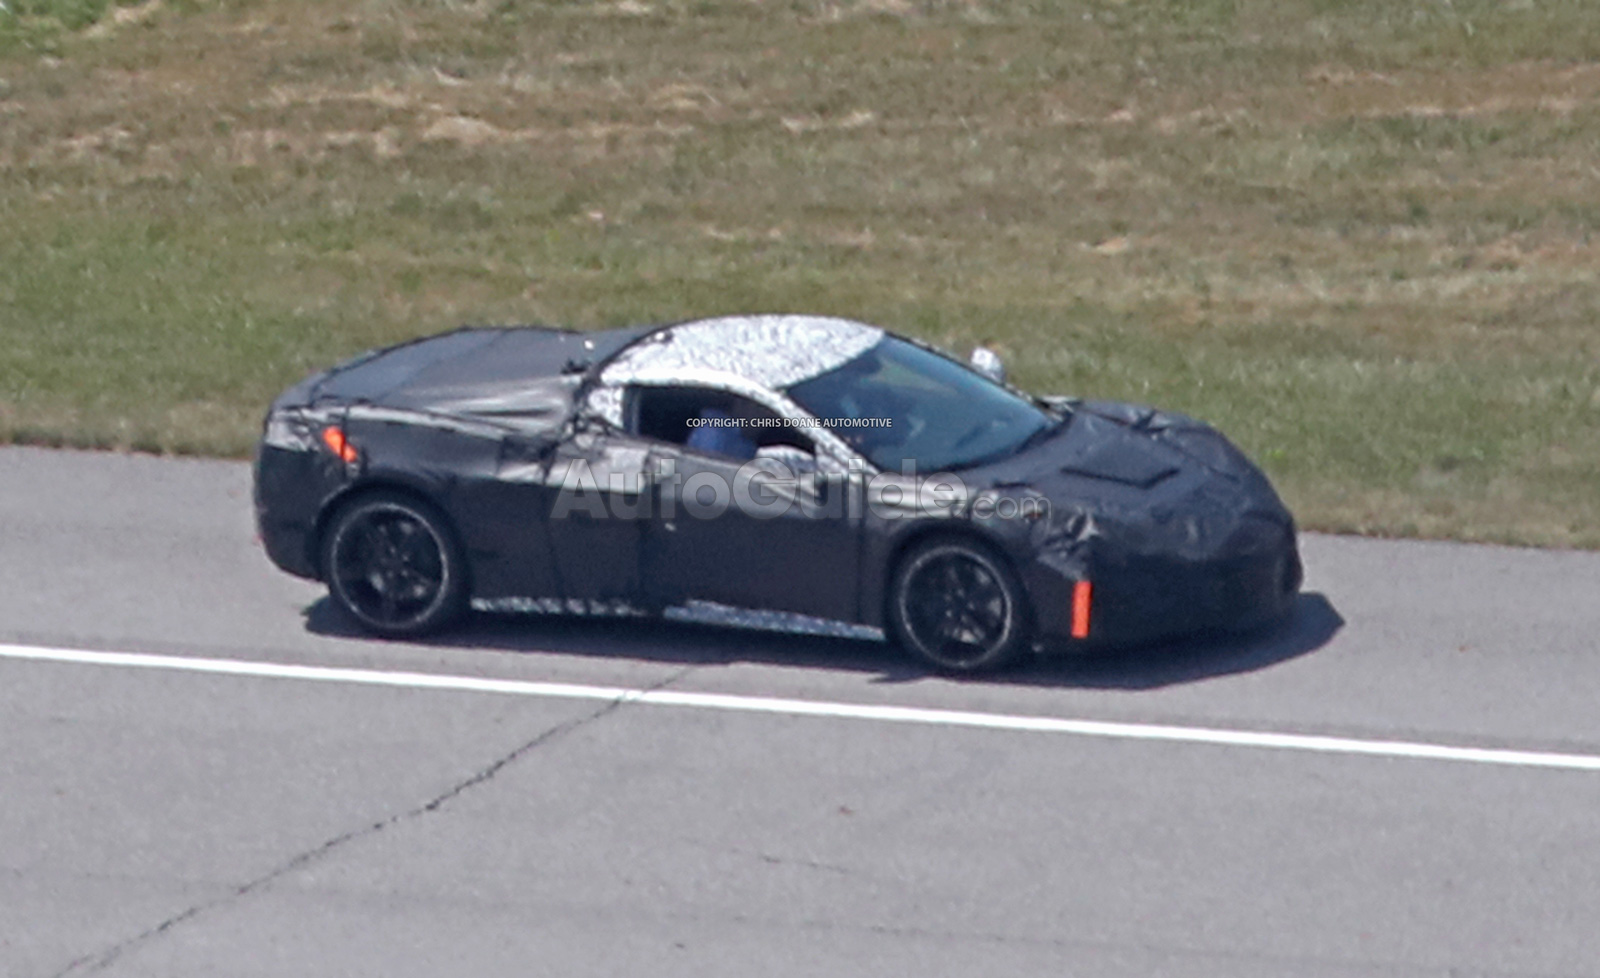 2019 Mid Engine Corvette Resurfaces As Plant Shuts Down